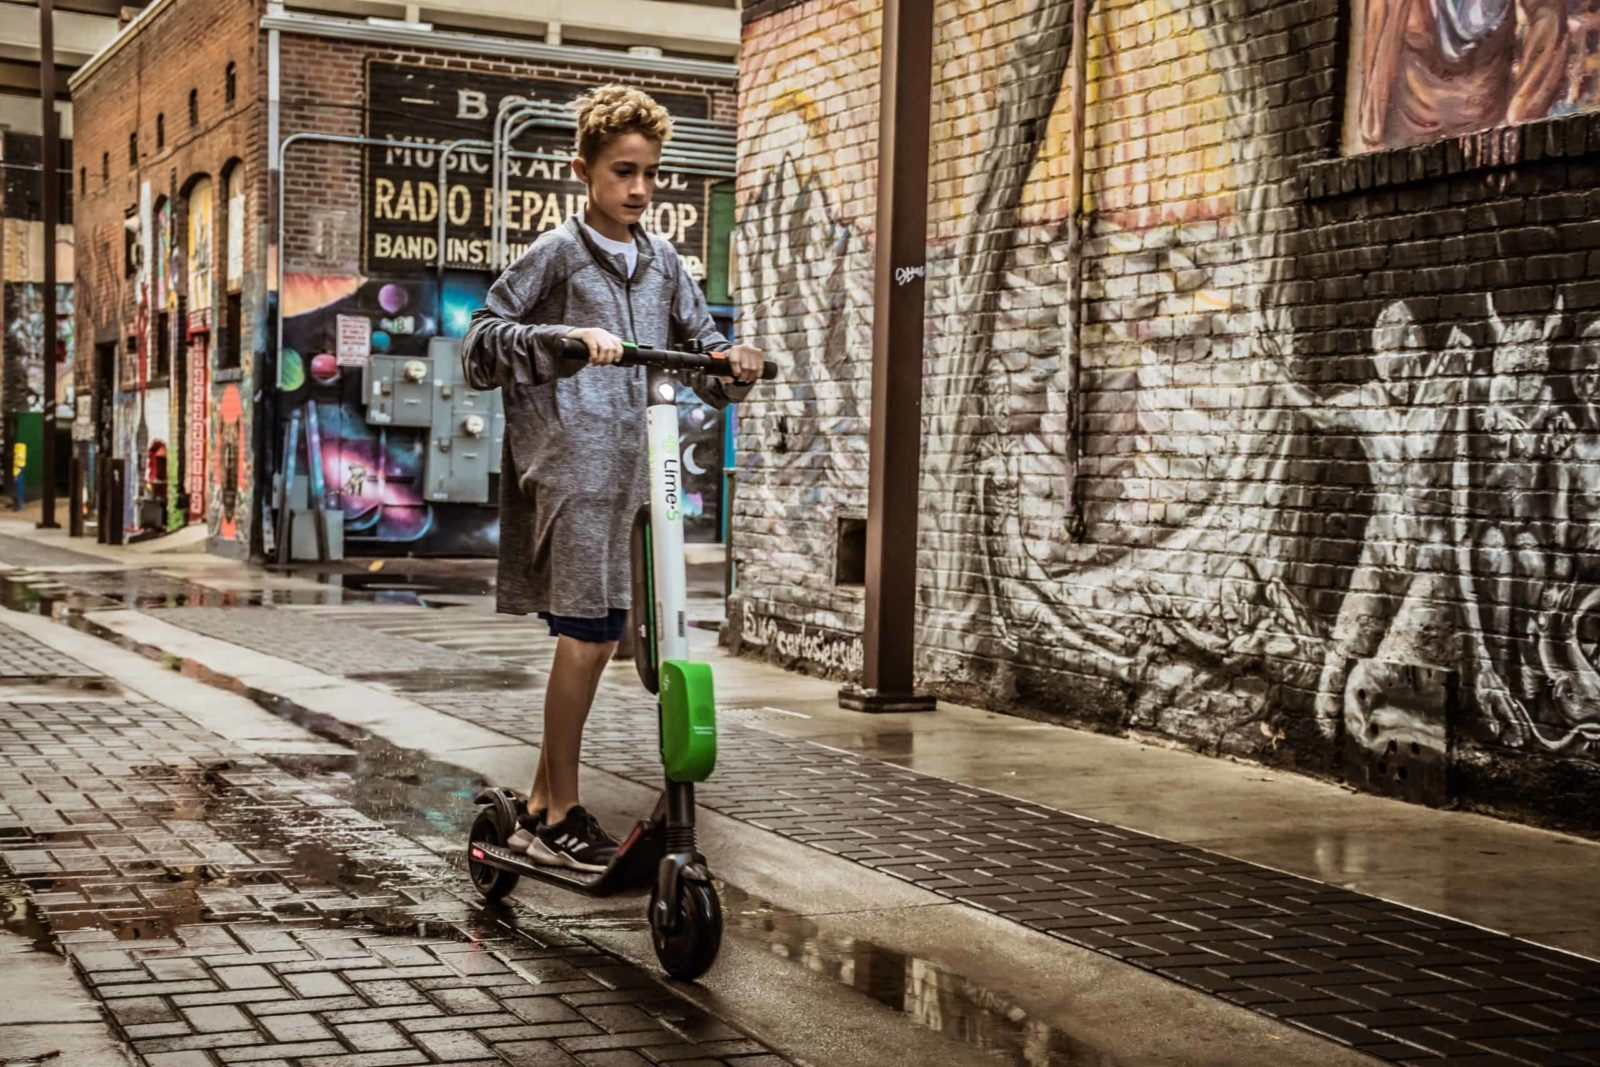 e-scooter rental app benefitting people